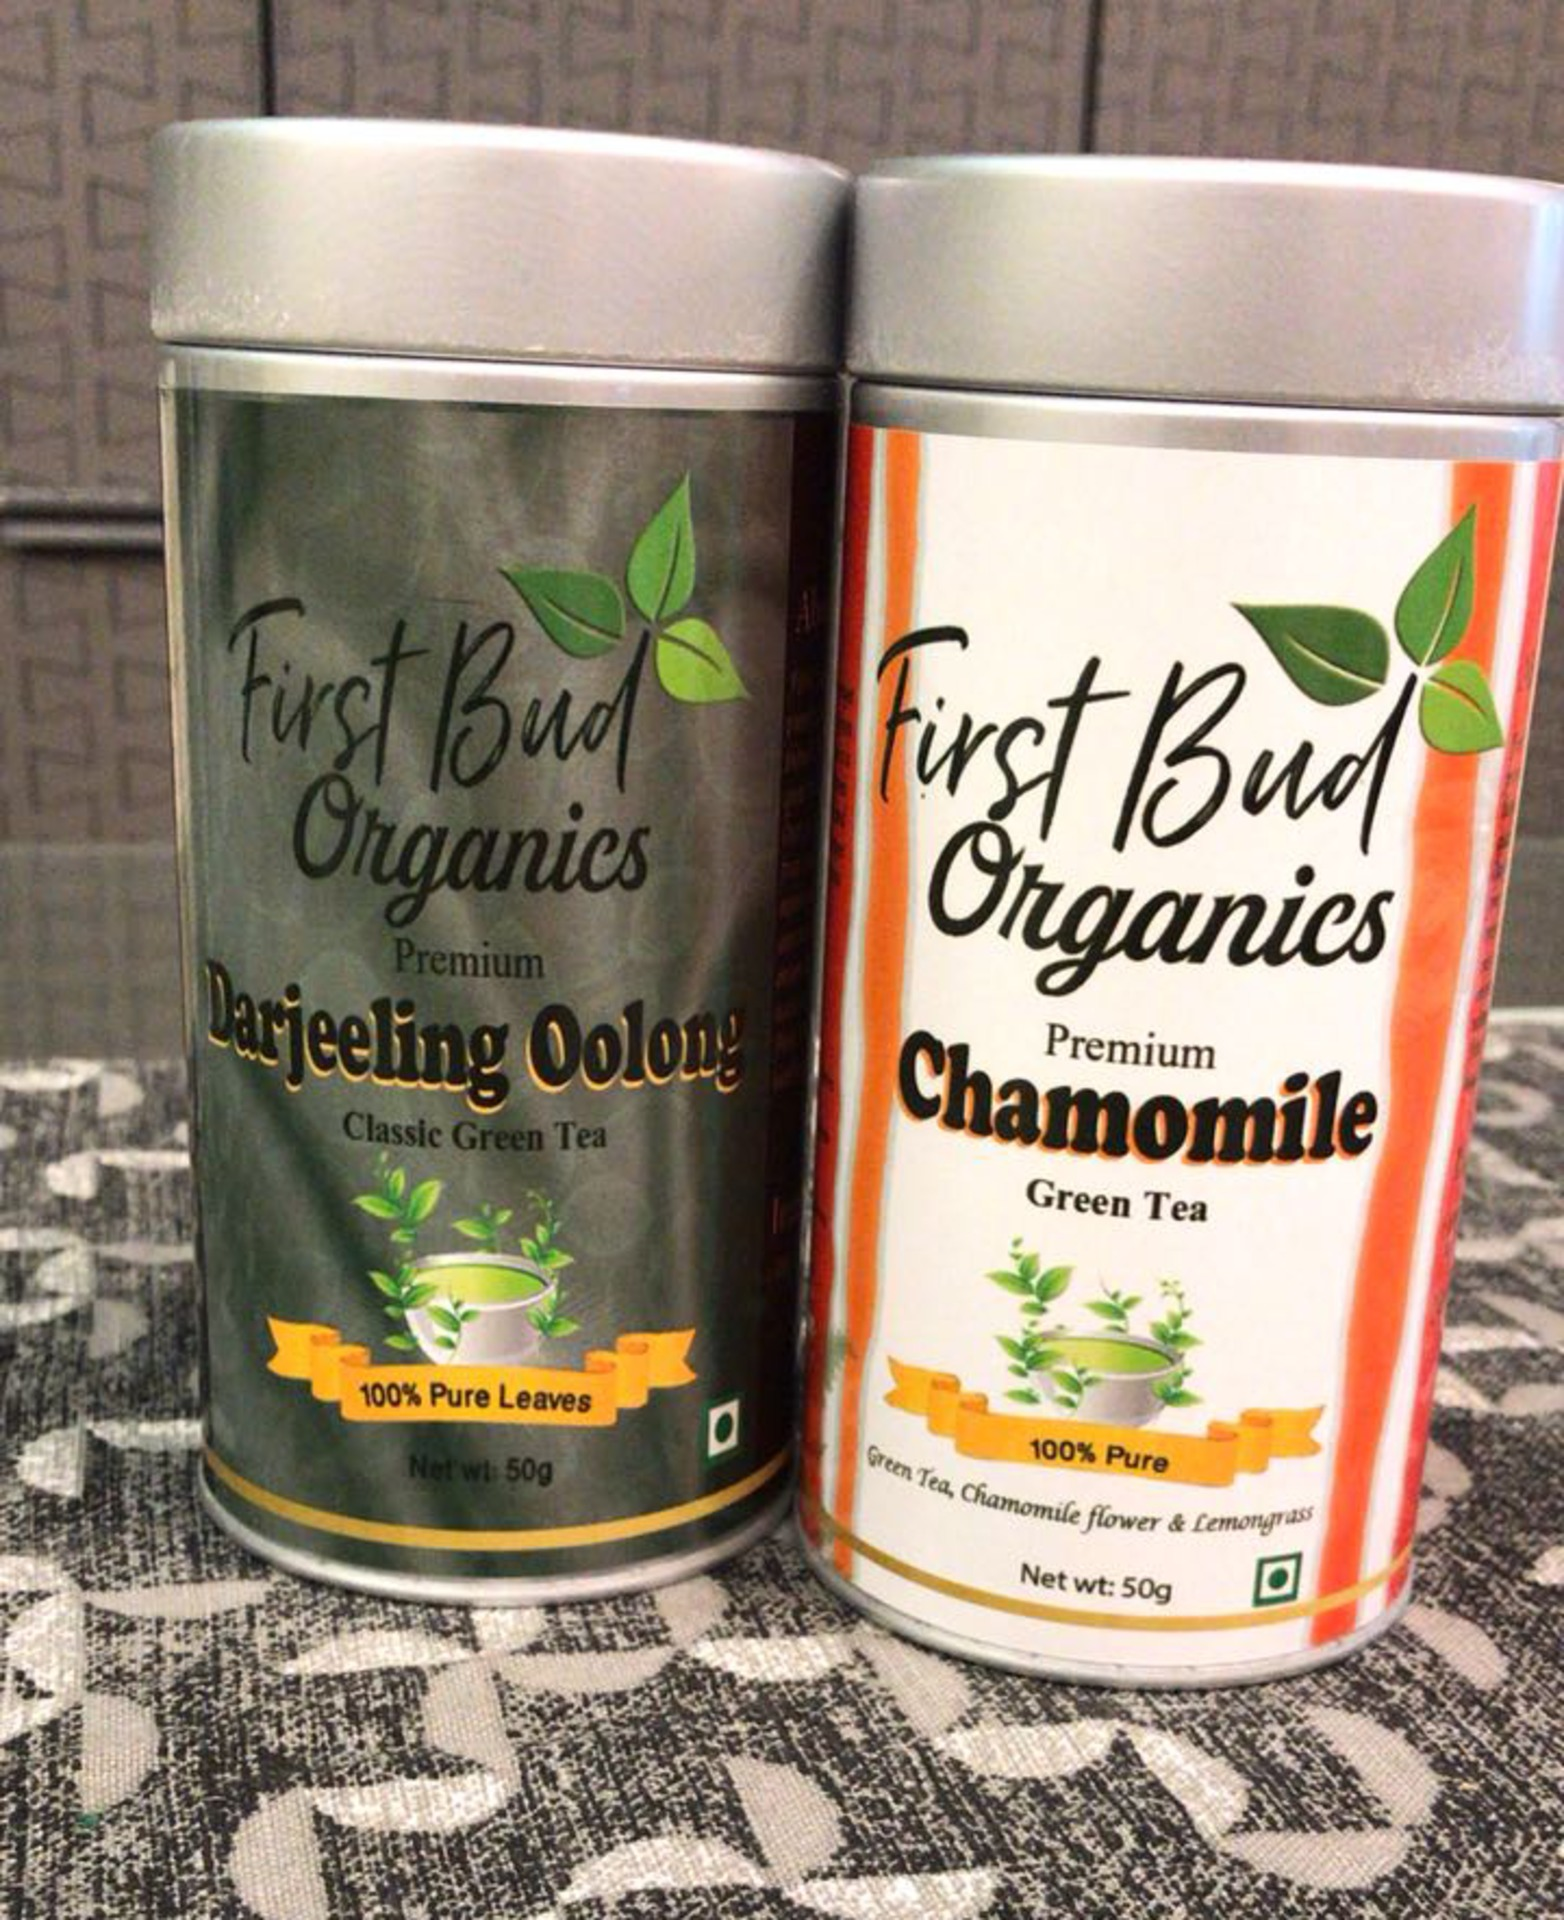 First Bud Organics Darjeeling Oolong and Chamomile Green Tea Review image